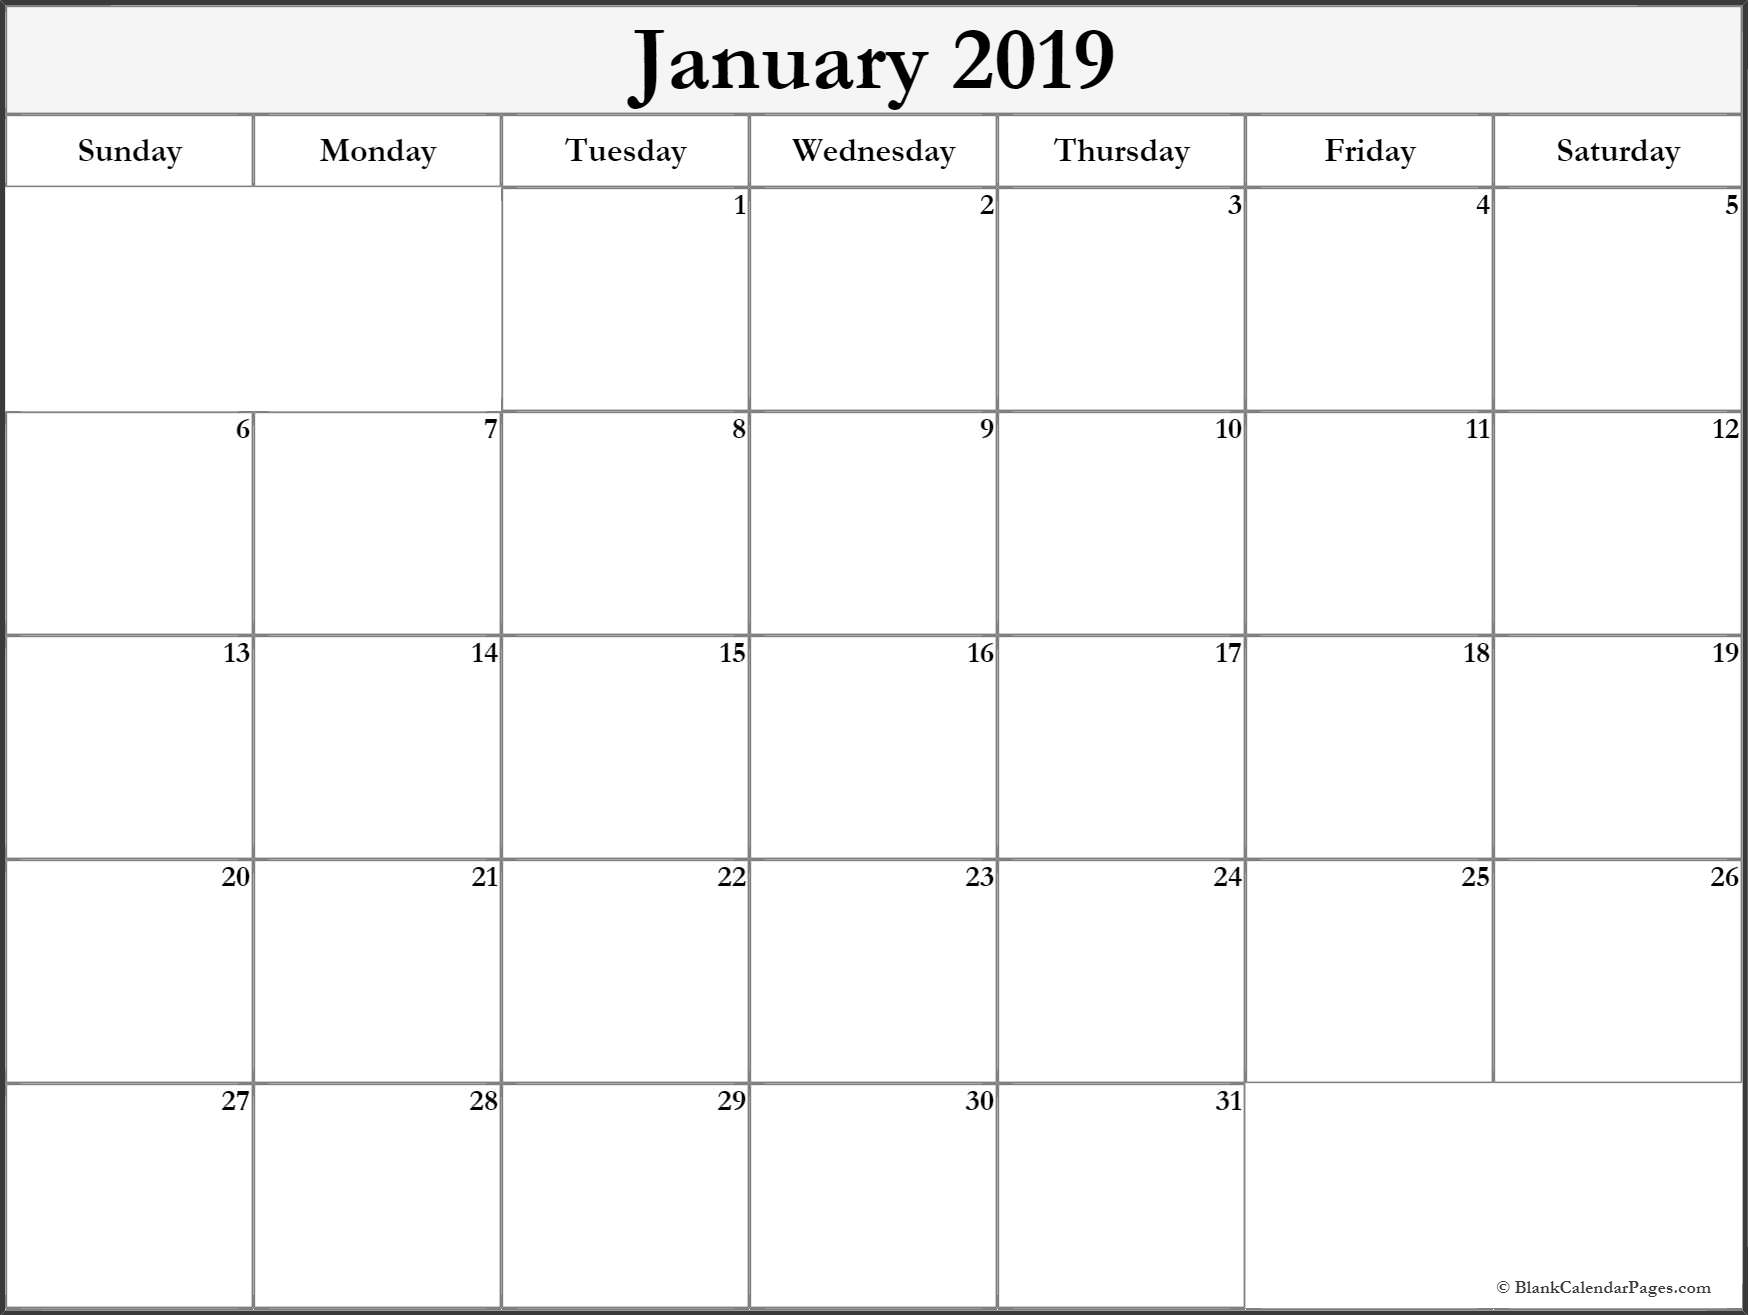 january 2019 free printable blank calendar collection::January 2019 Monthly Calendar